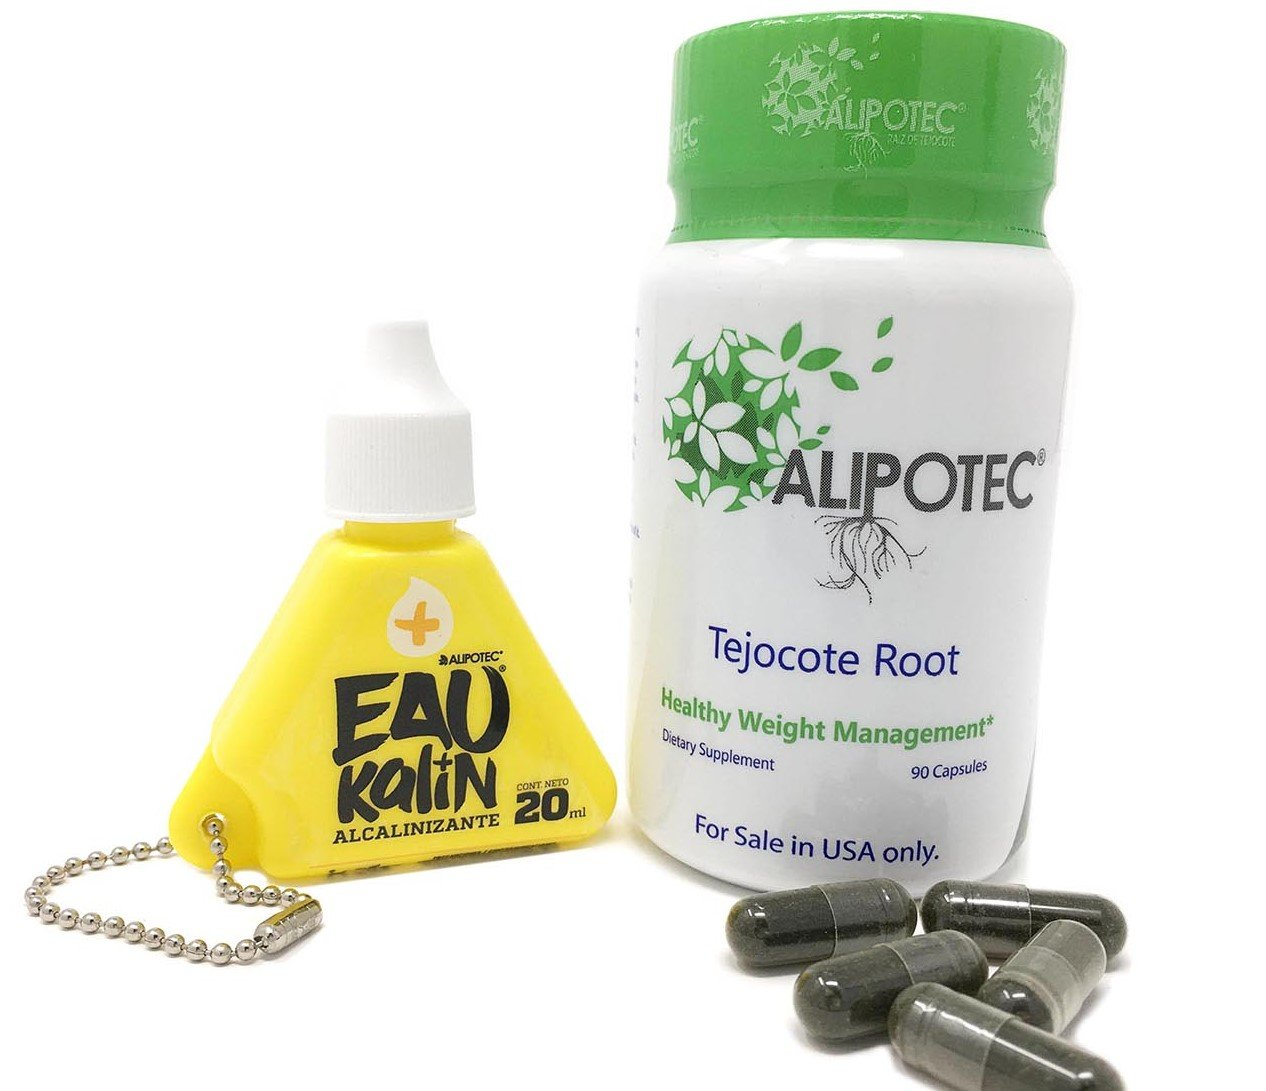 Alipotec Capsules Tejocote Root Supplement Capsulas Alipotec Raiz de Tejocote 90 Day Supply and Eau Kalin